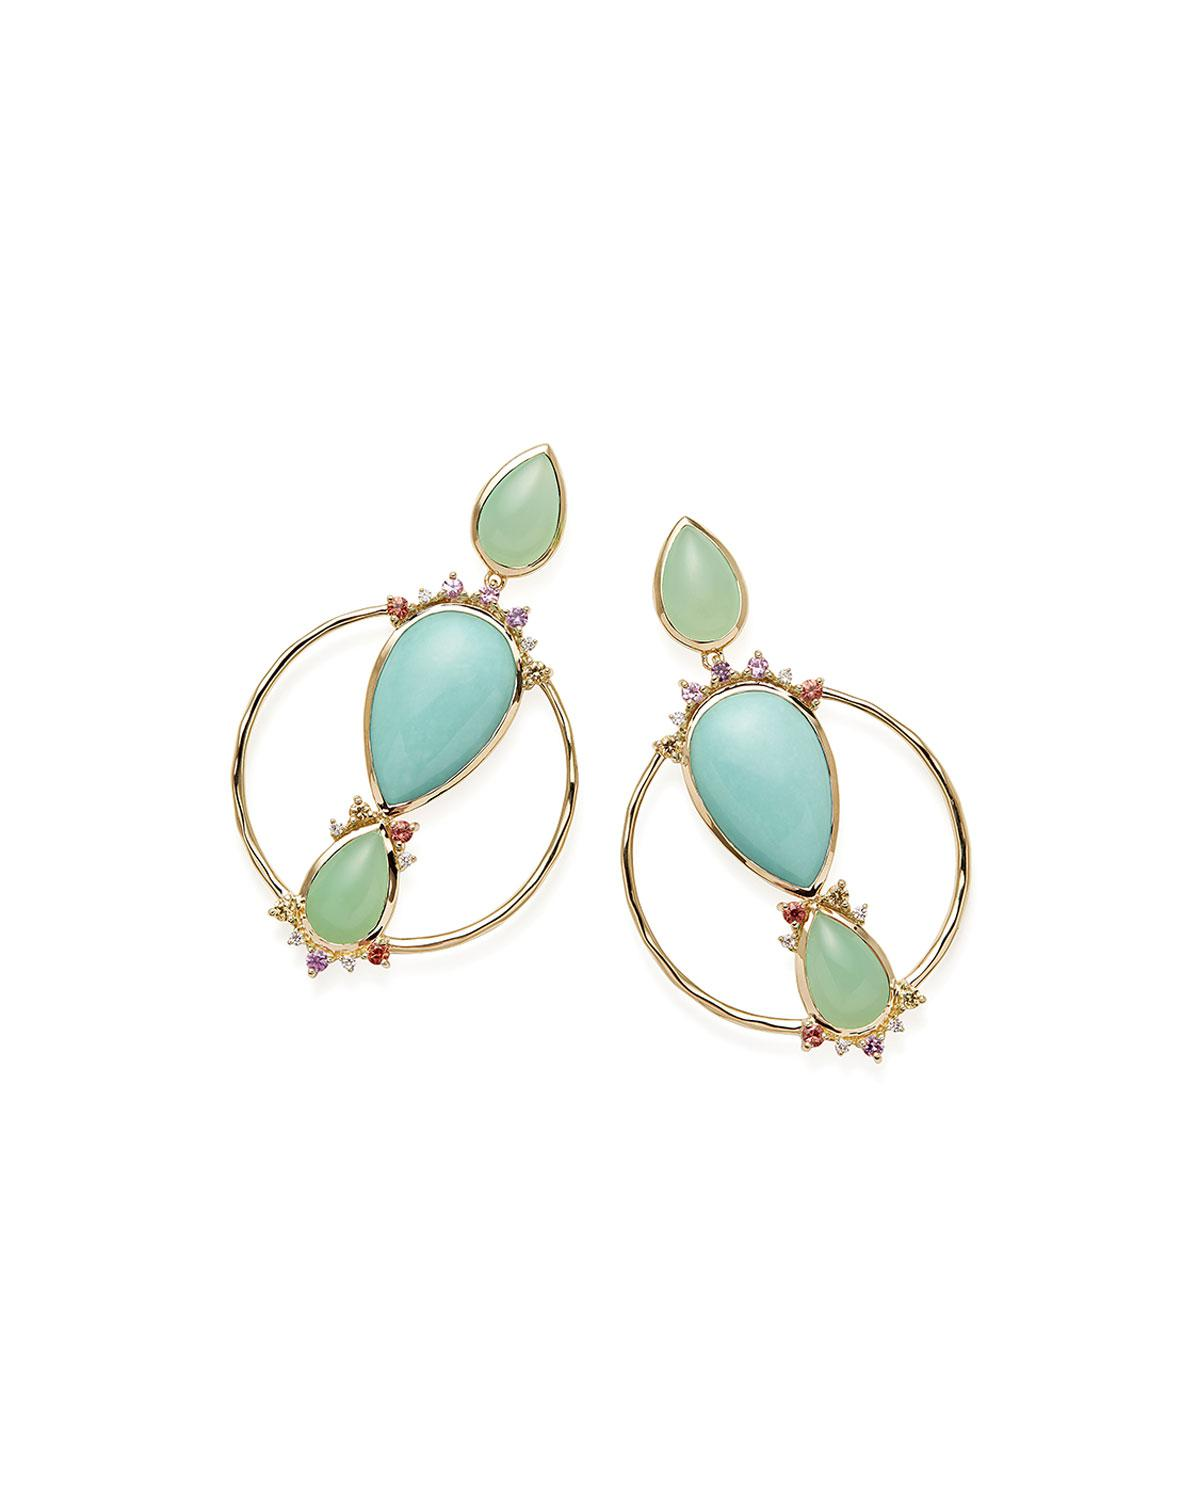 Ippolita 18k Prisma Three-Stone Hoop Earrings in Portofino vGD7GYvVvL